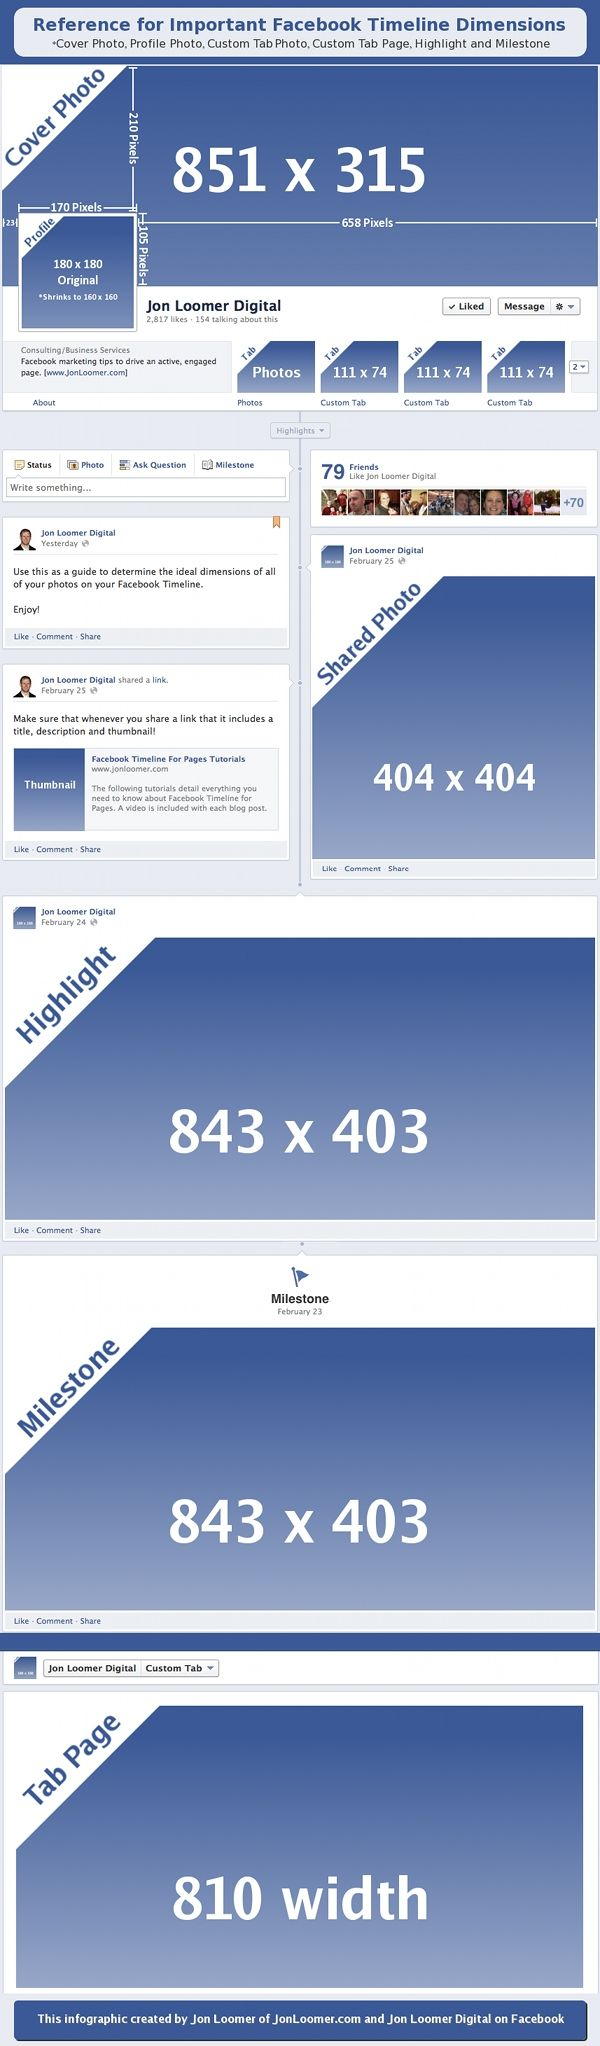 Infographic: Reference of Dimensions for Facebook Timeline Images For Pages